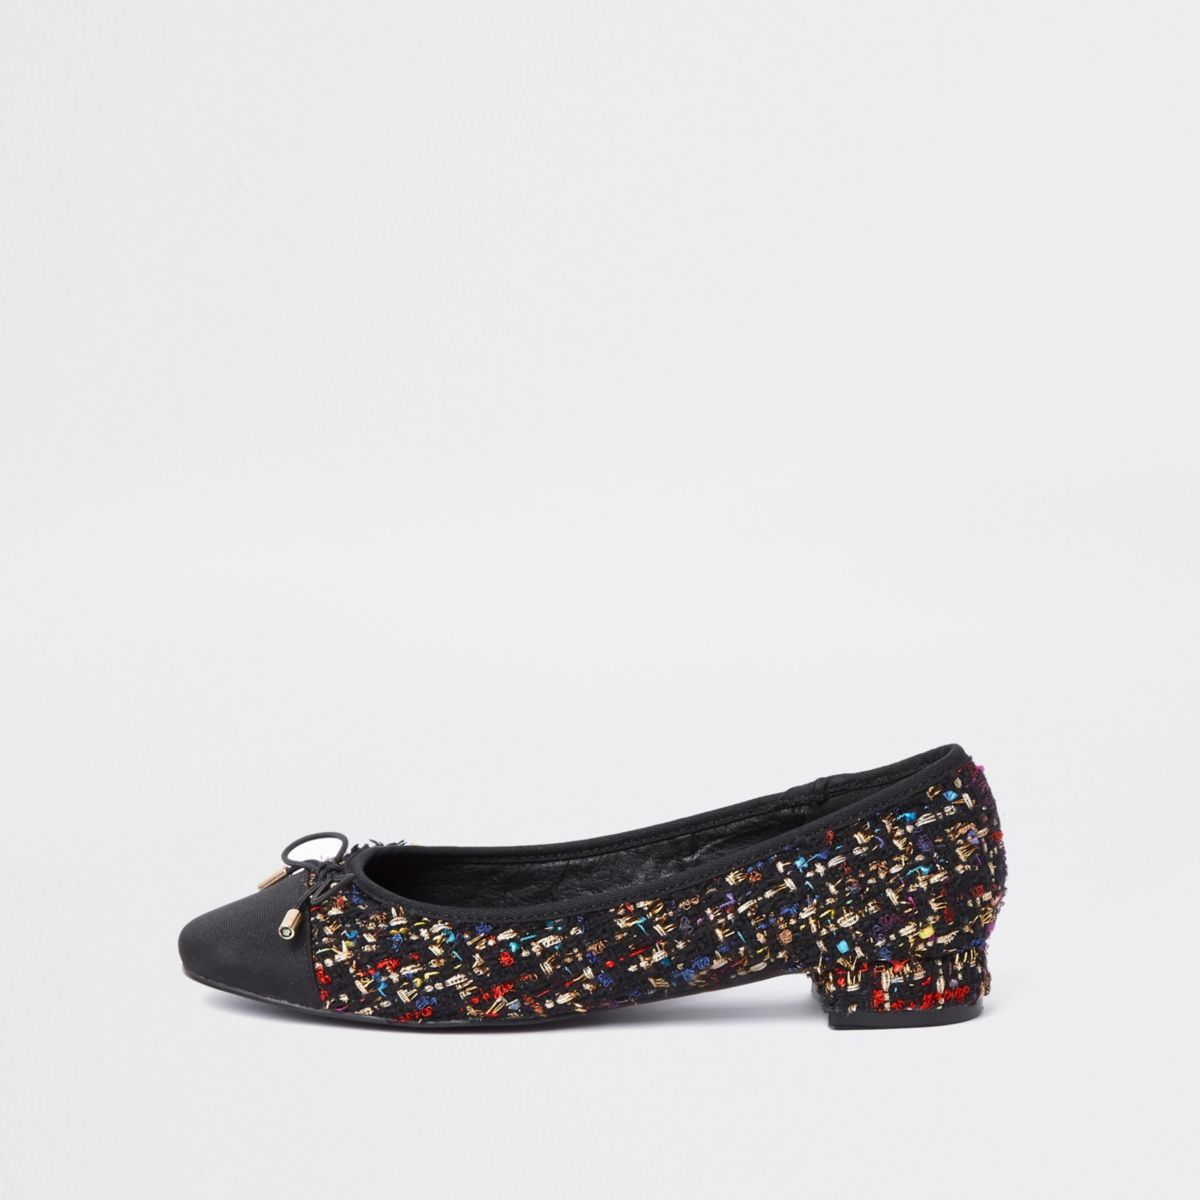 Black broderie bow ballet flats